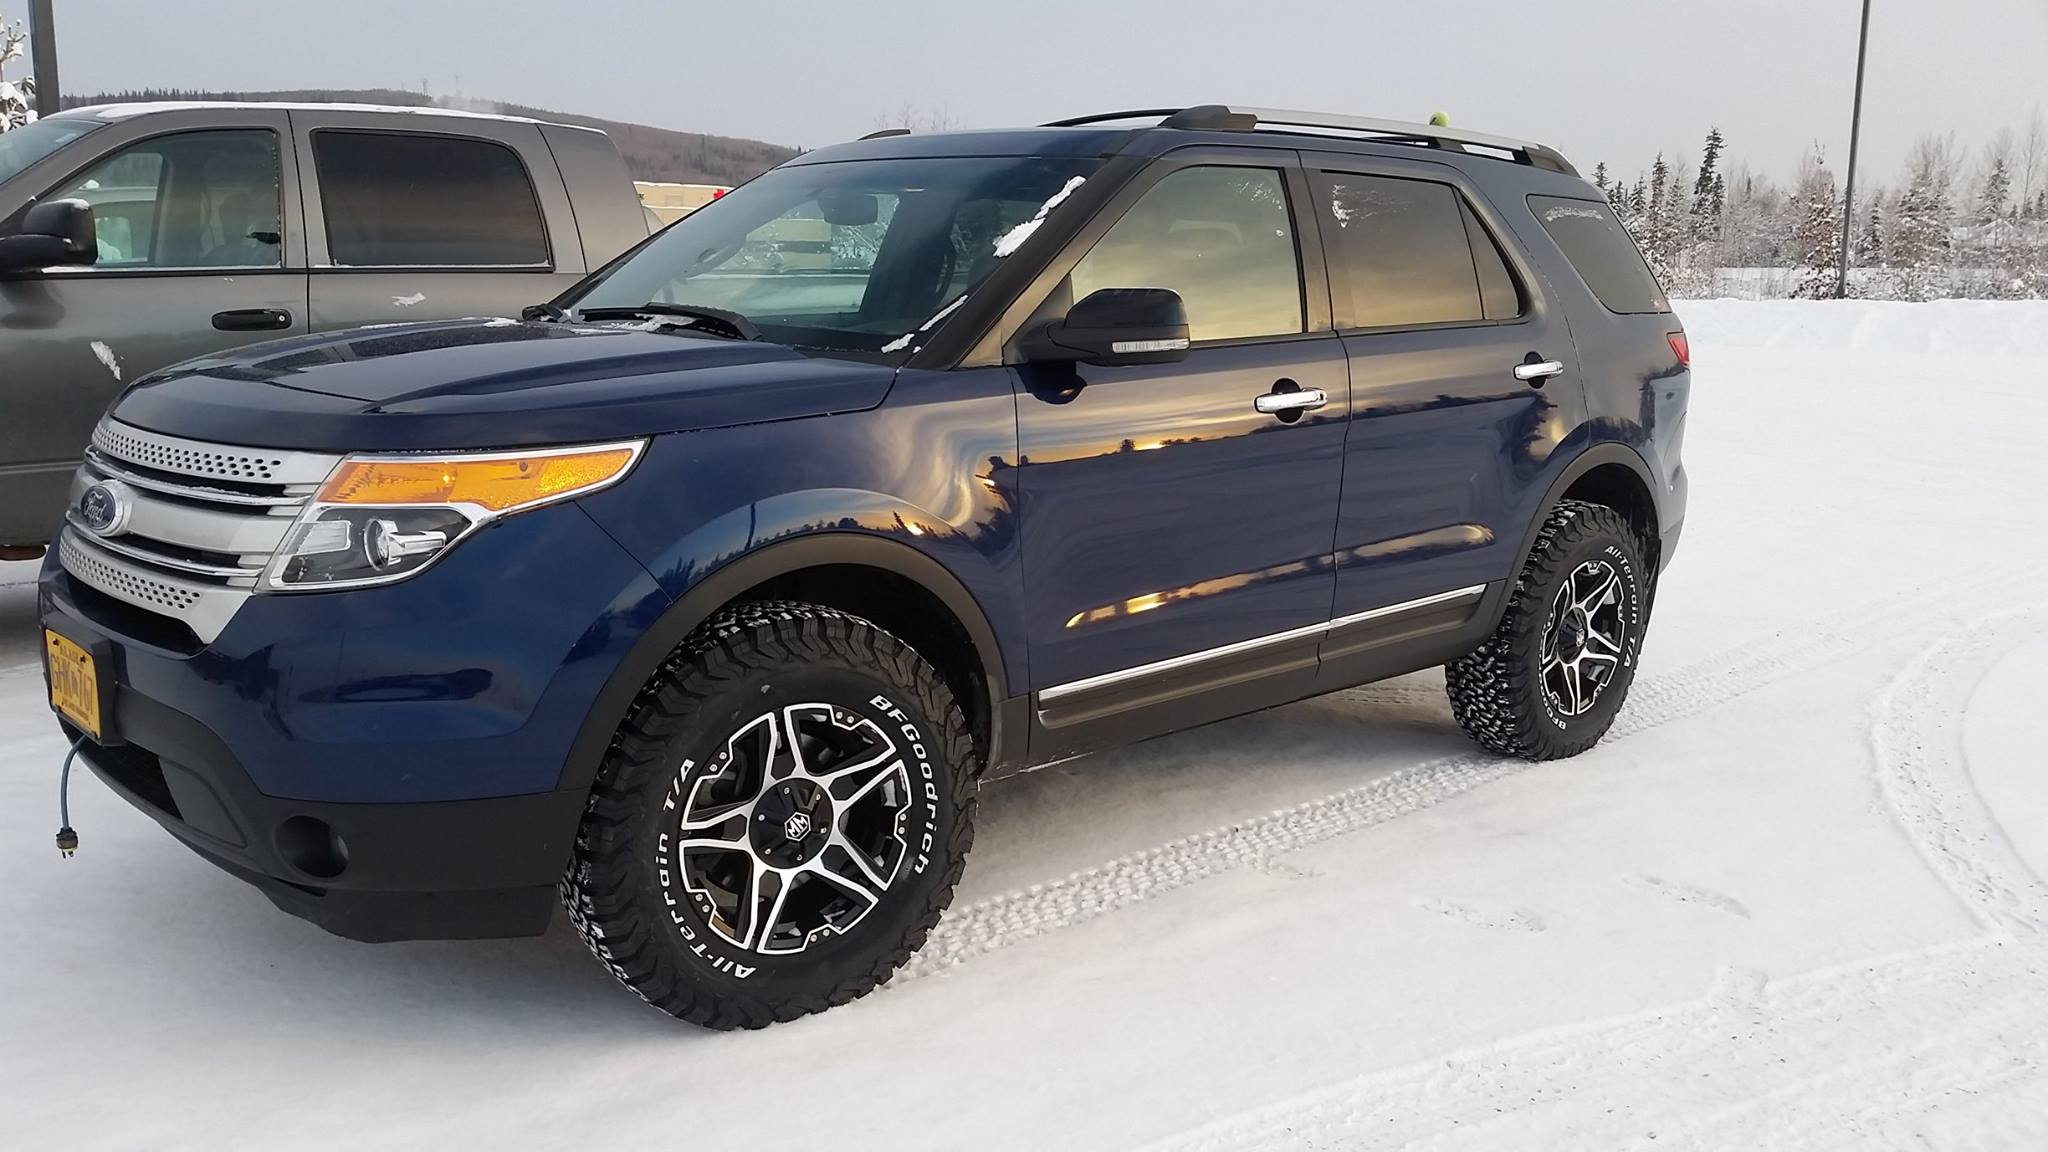 Ford Ranger Tuning >> Lift kits for 5th gen. Explorer | Page 13 | Ford Explorer and Ford Ranger Forums - Serious ...